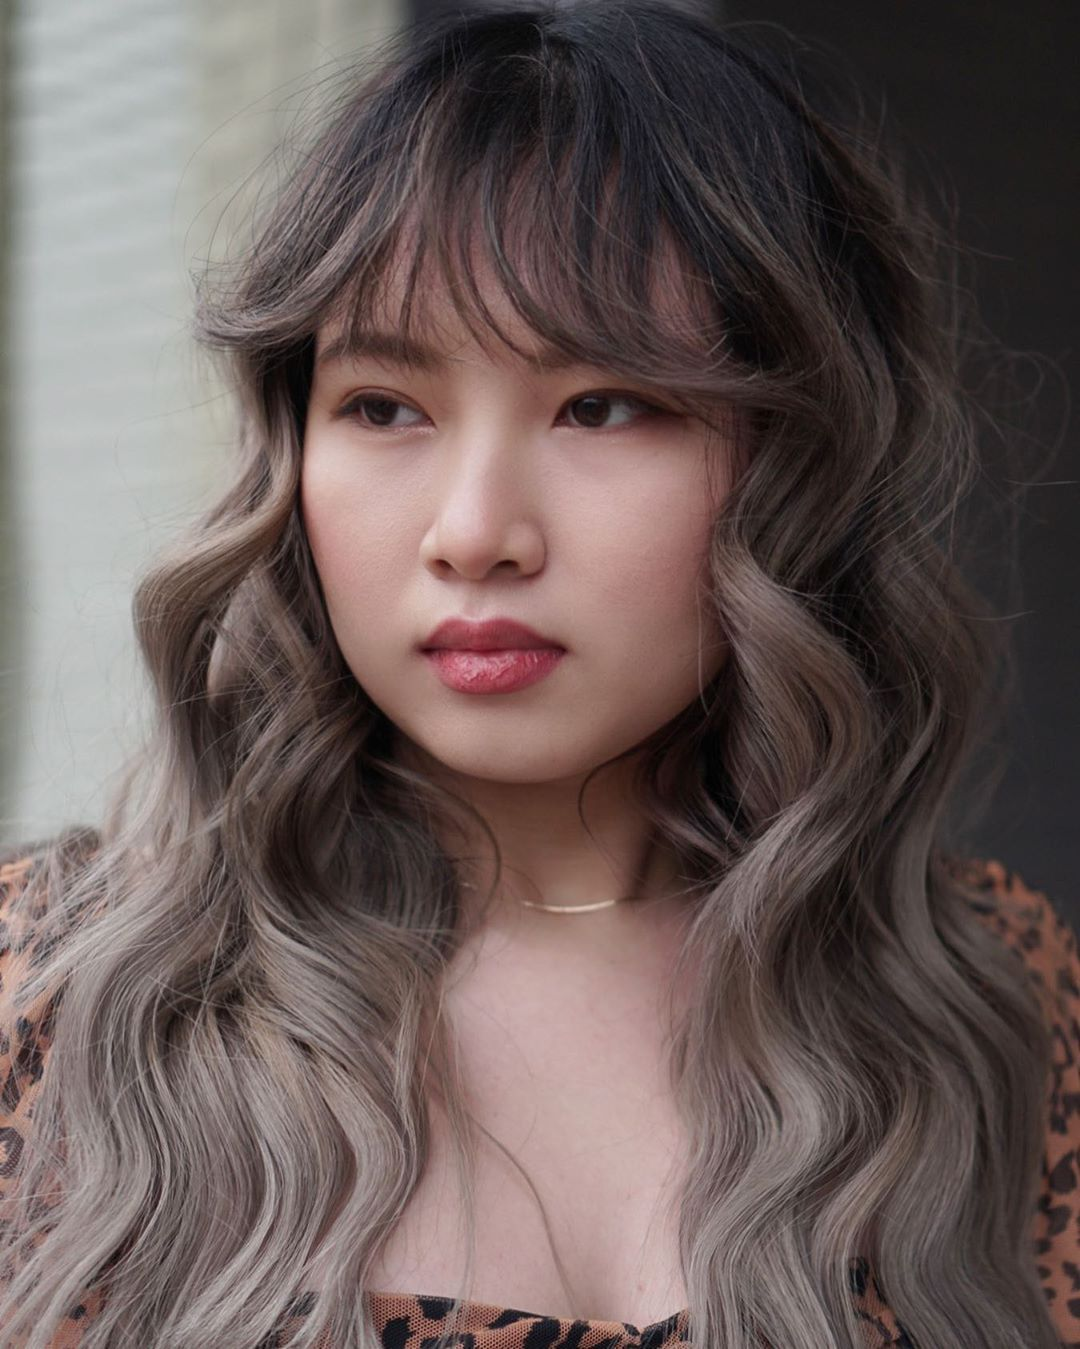 50 Most Trendy And Flattering Bangs For Round Faces In 2021 Hadviser Bangs For Round Face Haircuts For Round Face Shape Bangs With Medium Hair